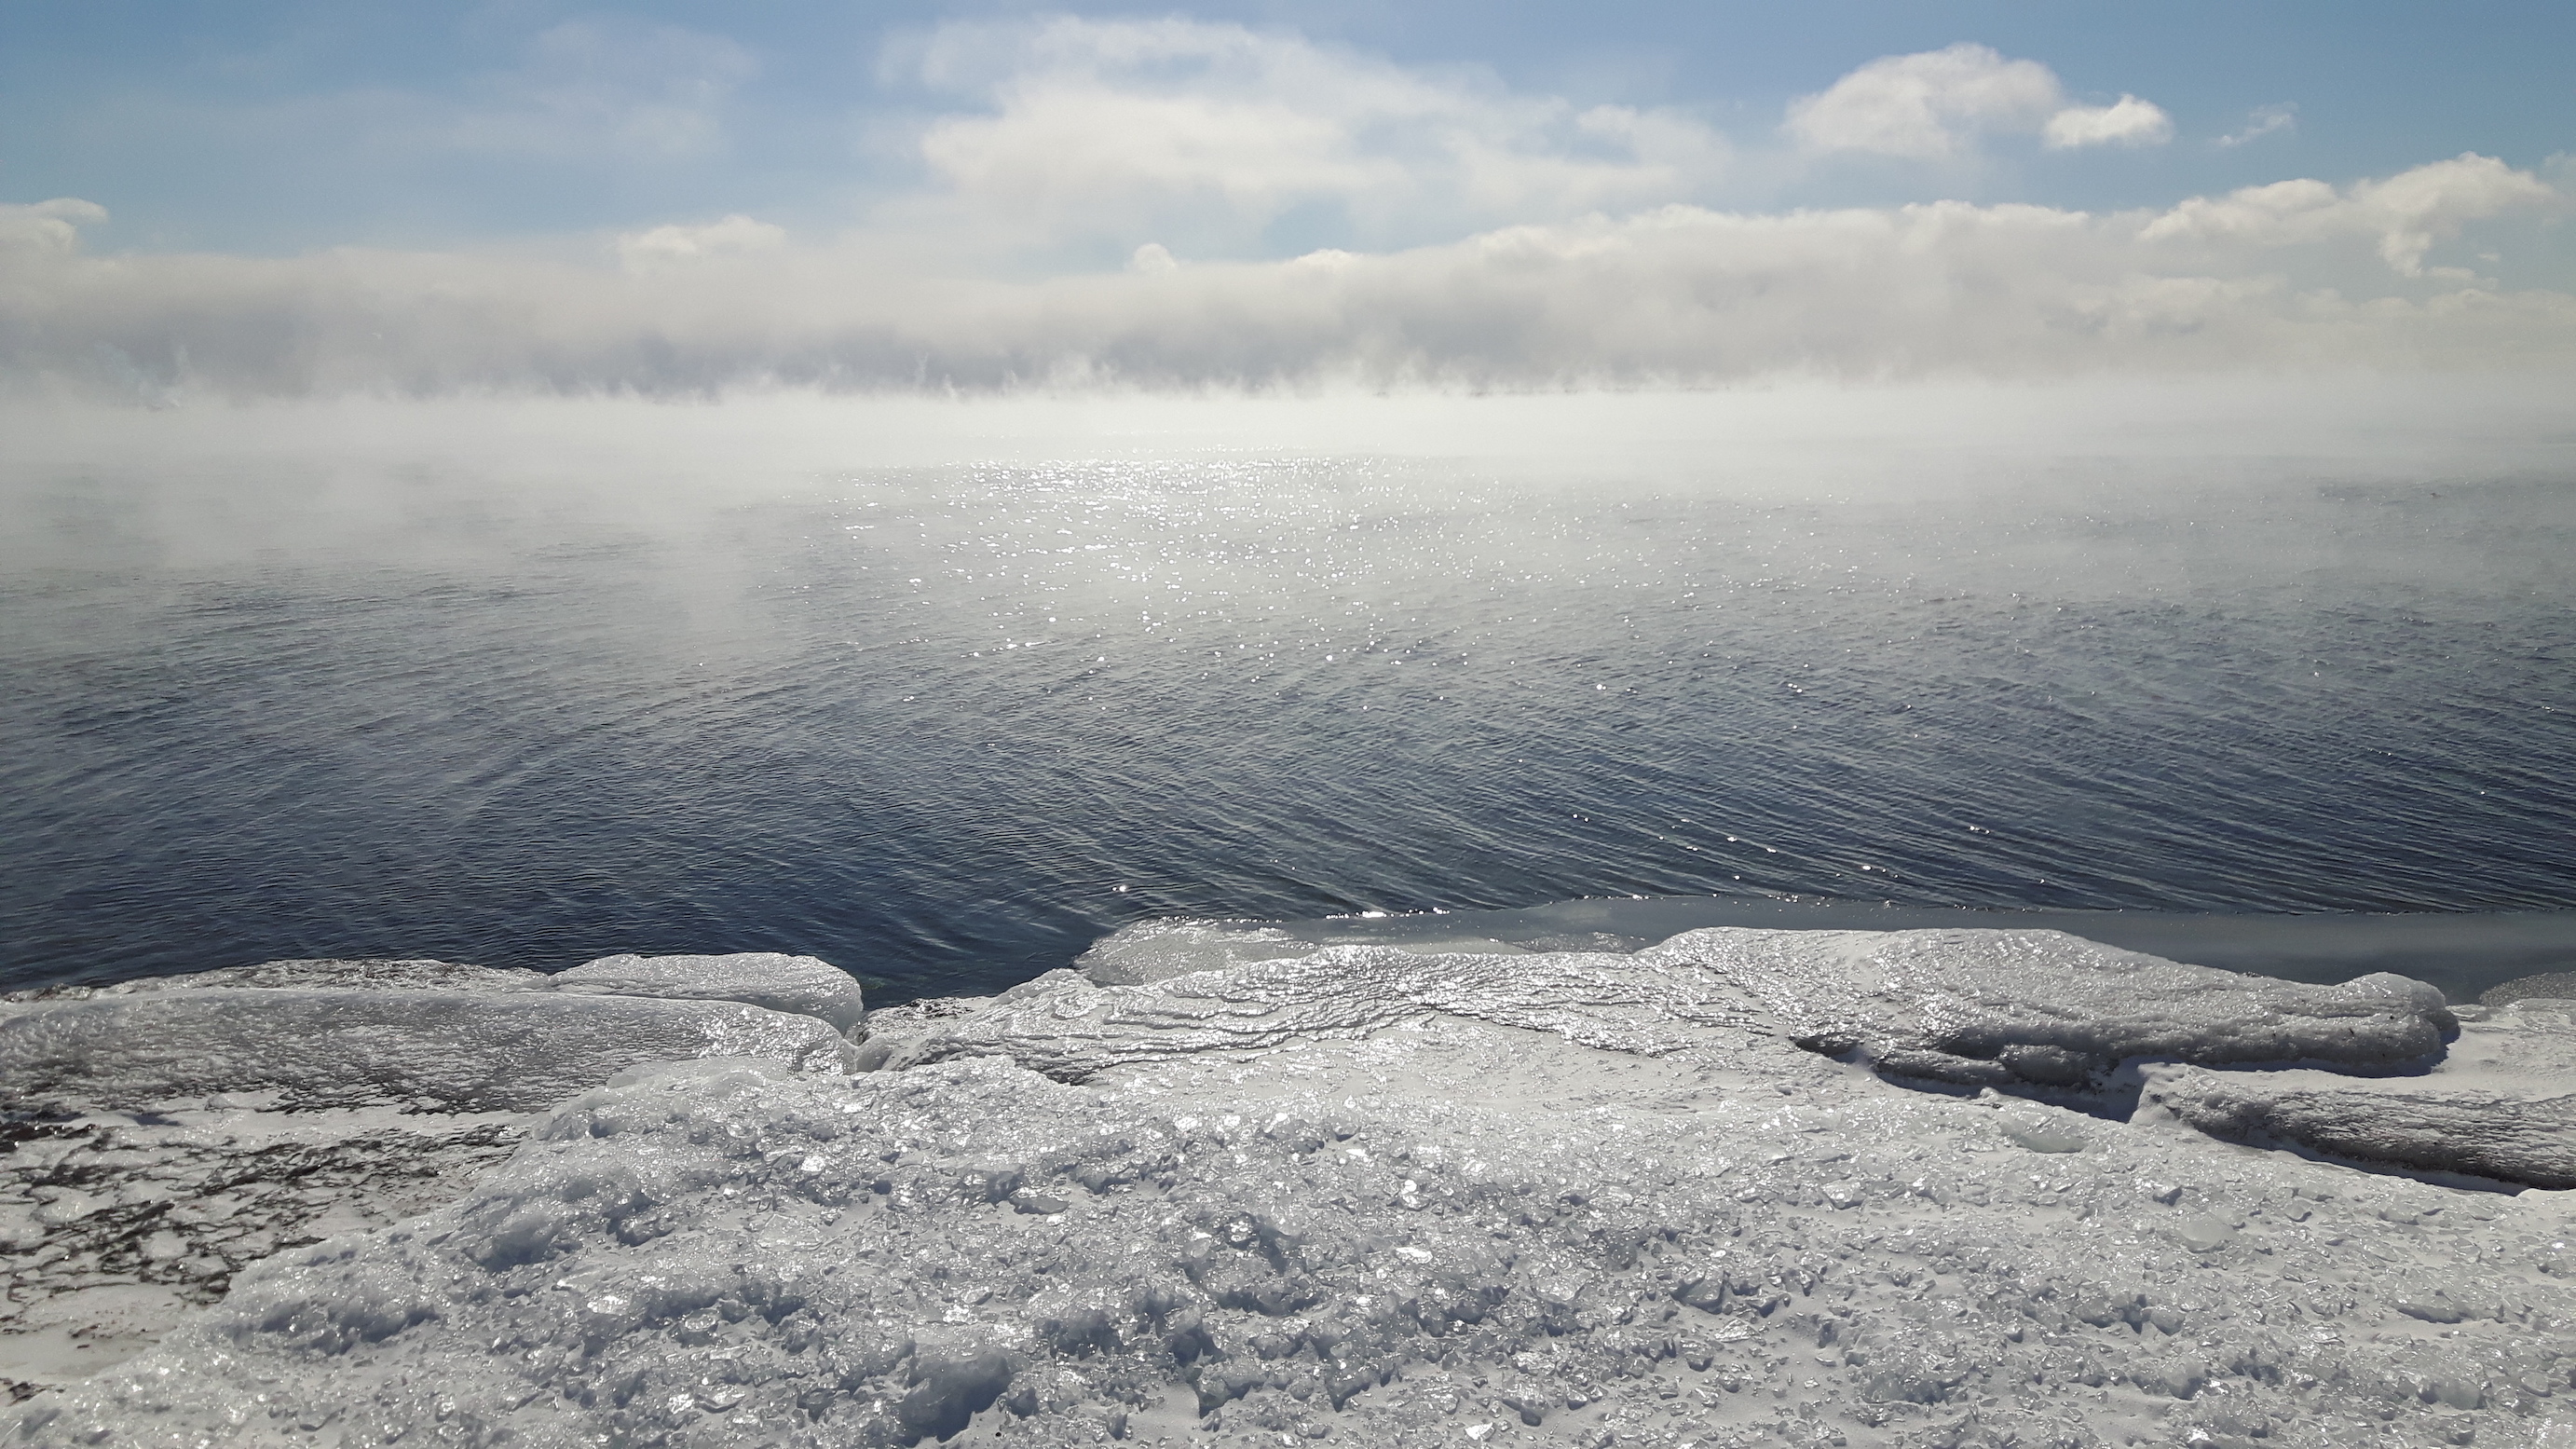 New research from the NSF has found that the shape of Lake Ontario increases the severity of lake-effect snowstorms.